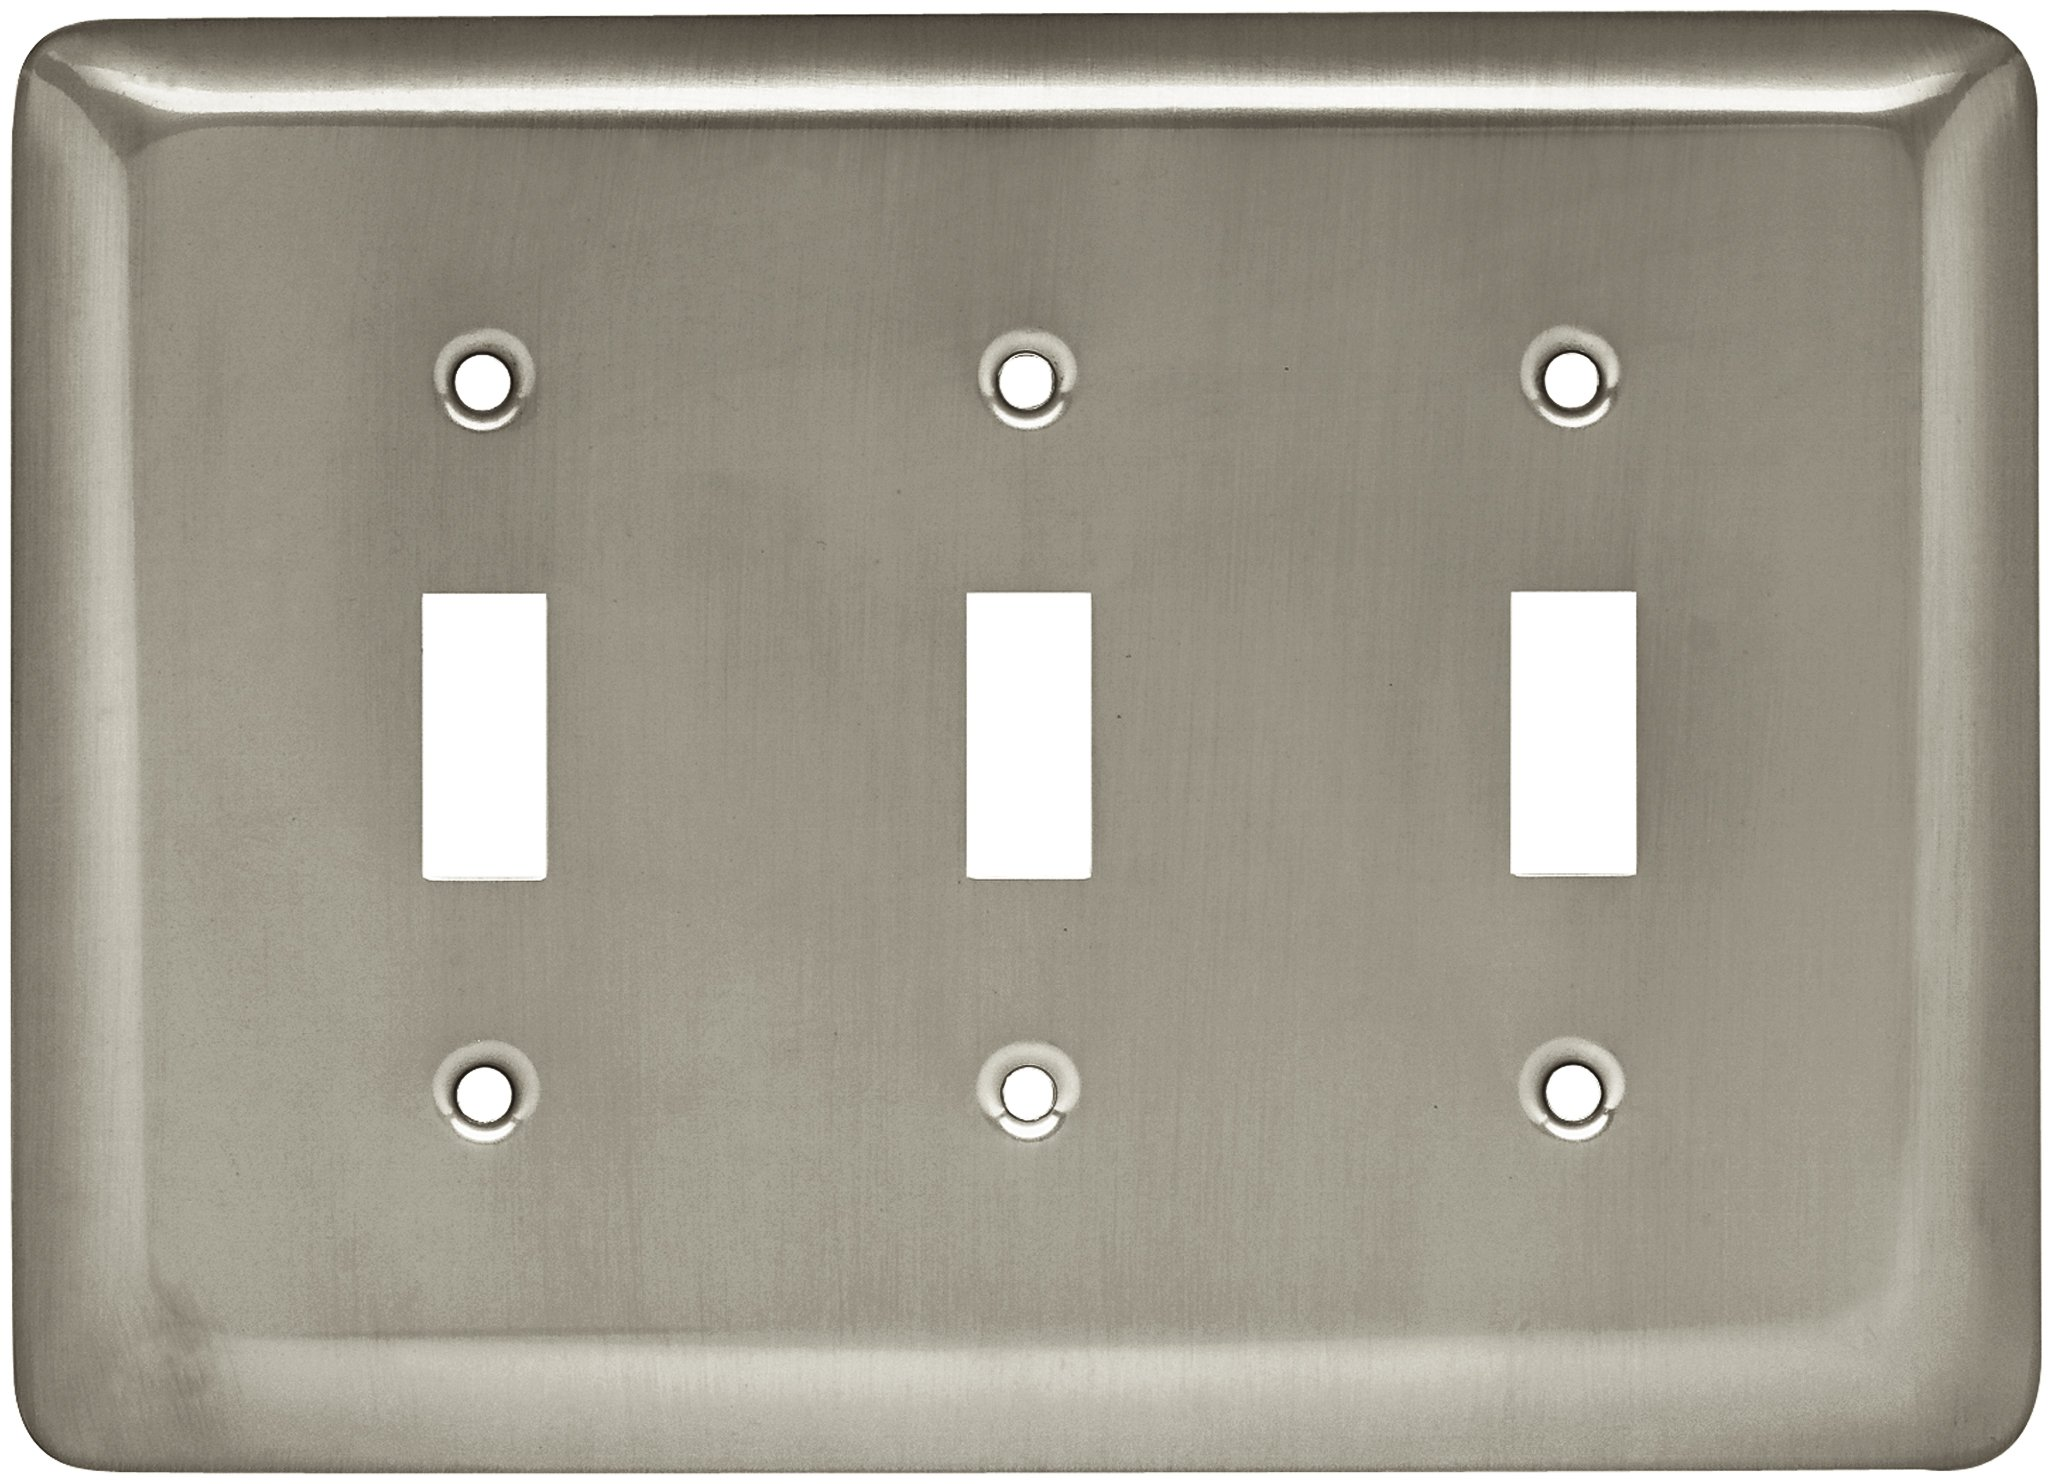 Brainerd 64380 Stamped Steel Round Triple Toggle Switch Wall Plate / Switch Plate / Cover, Satin Nickel